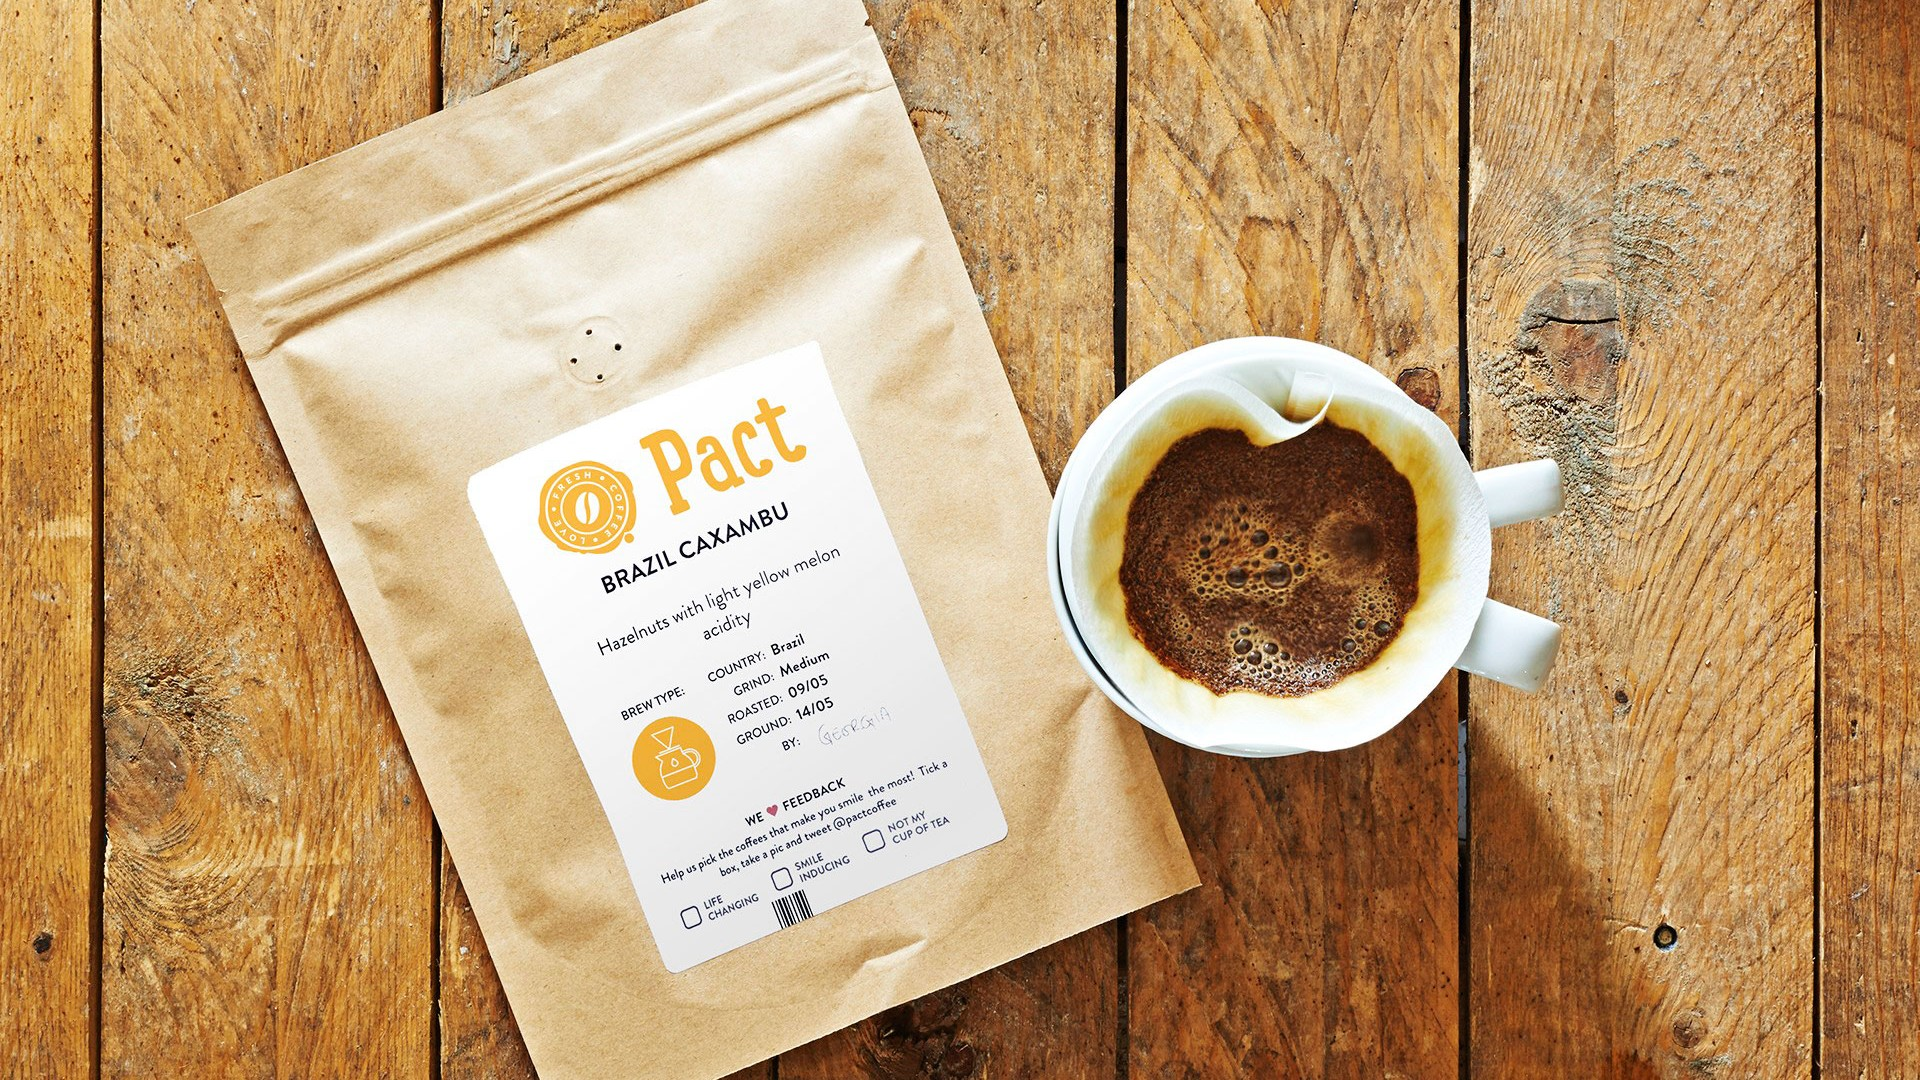 Pact Coffee bag